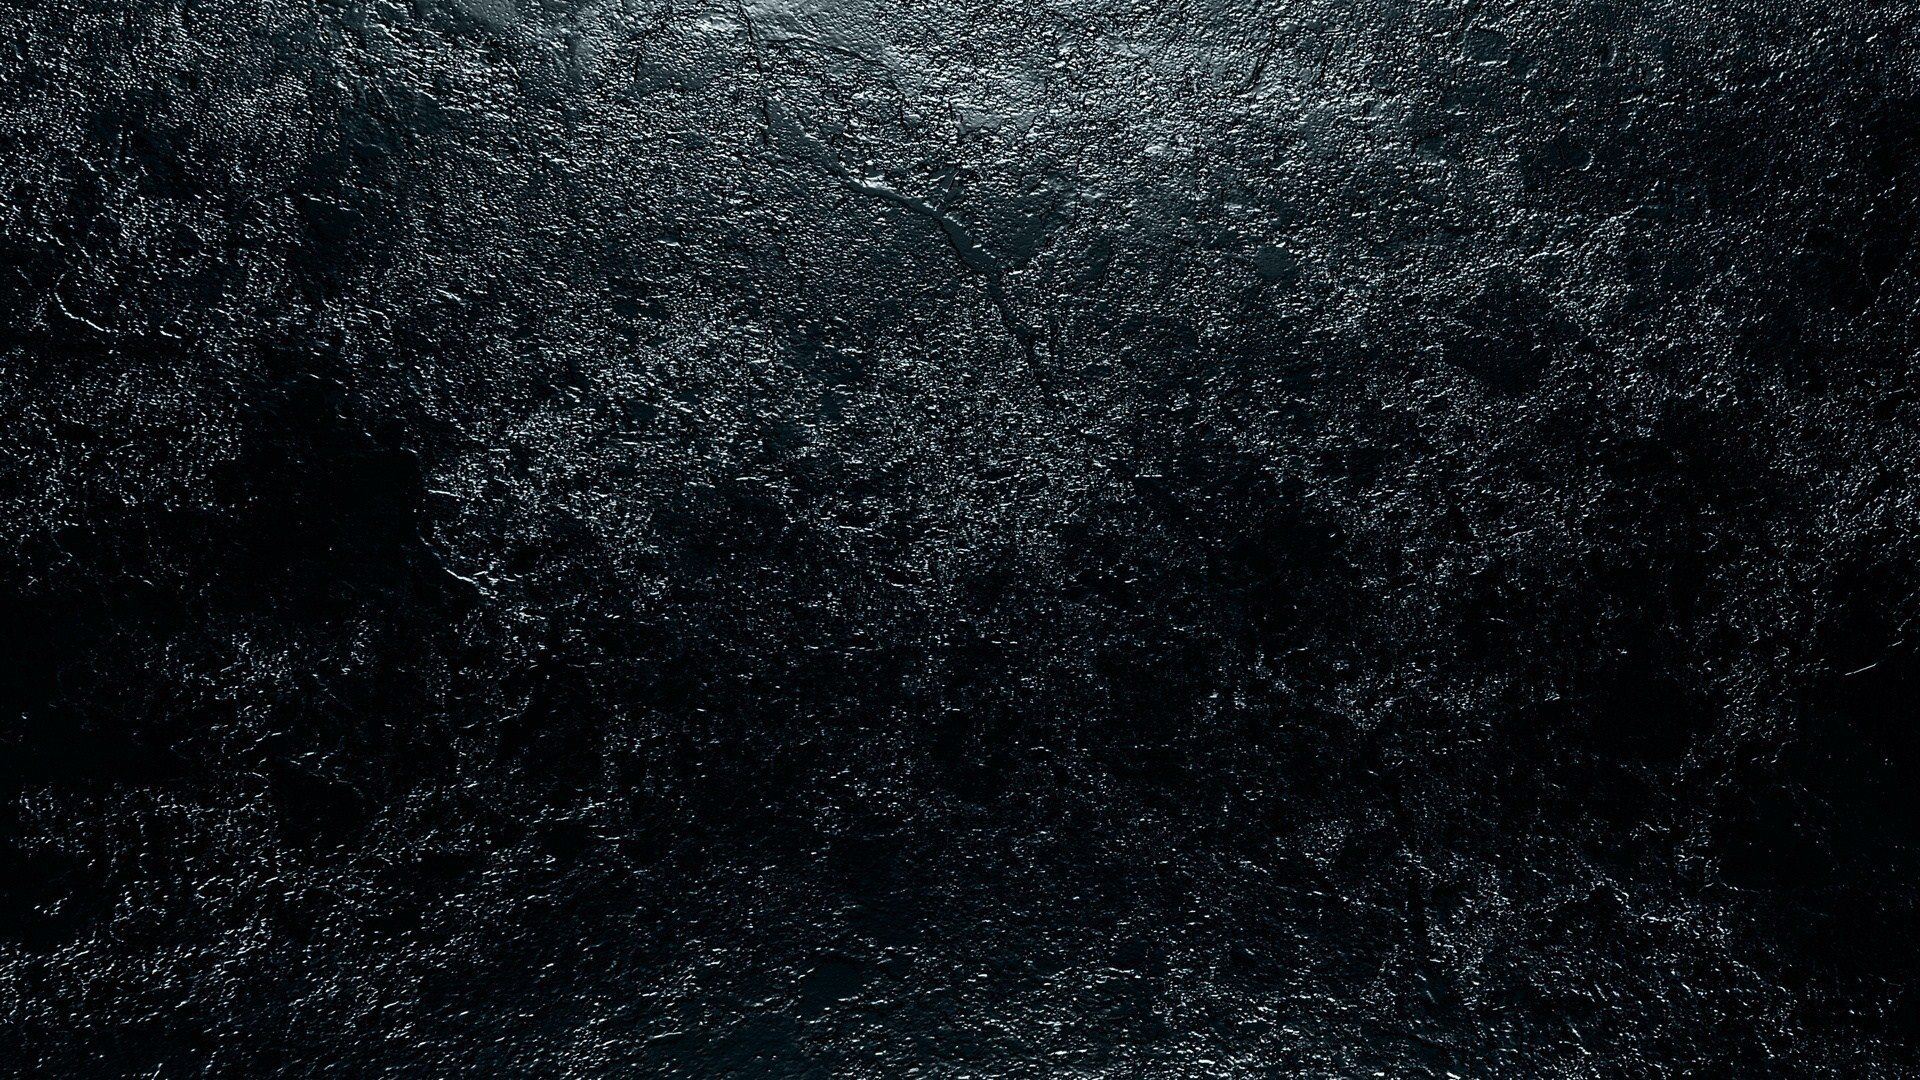 dark background texture wallpaper 1920x1080